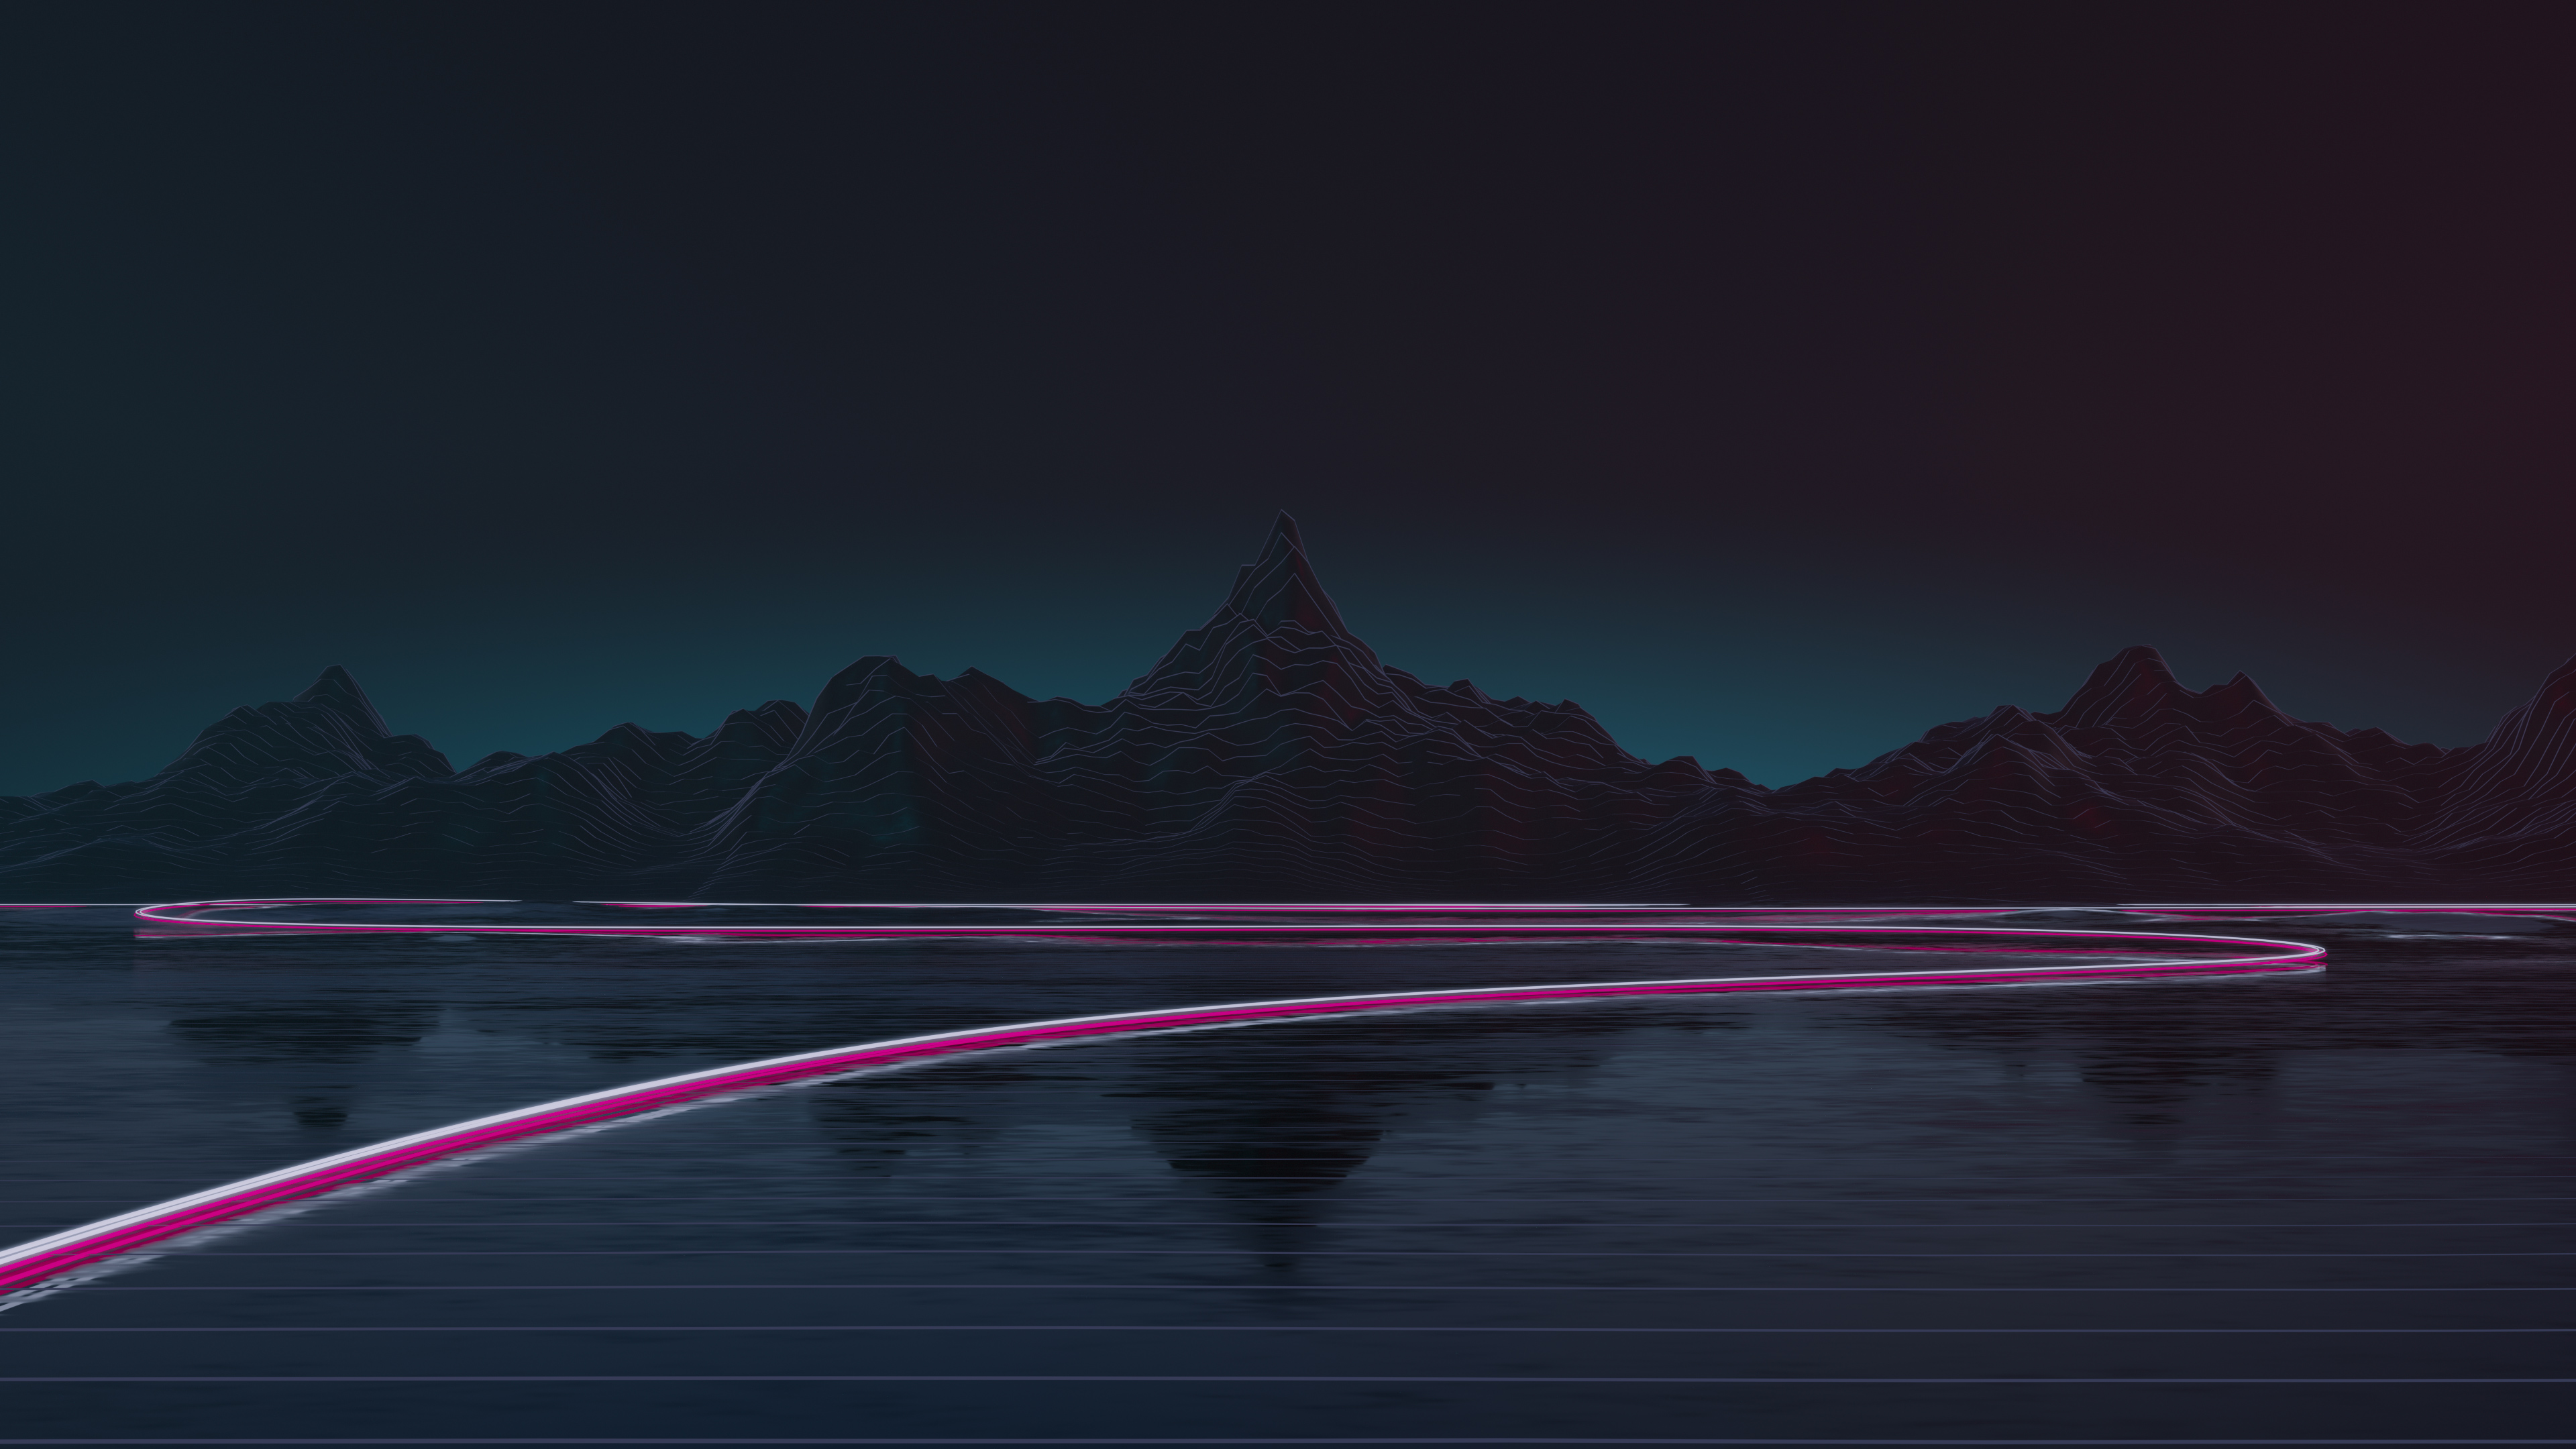 Synthwave road 4k hd artist 4k wallpapers images backgrounds photos and pictures - Background images 4k hd ...